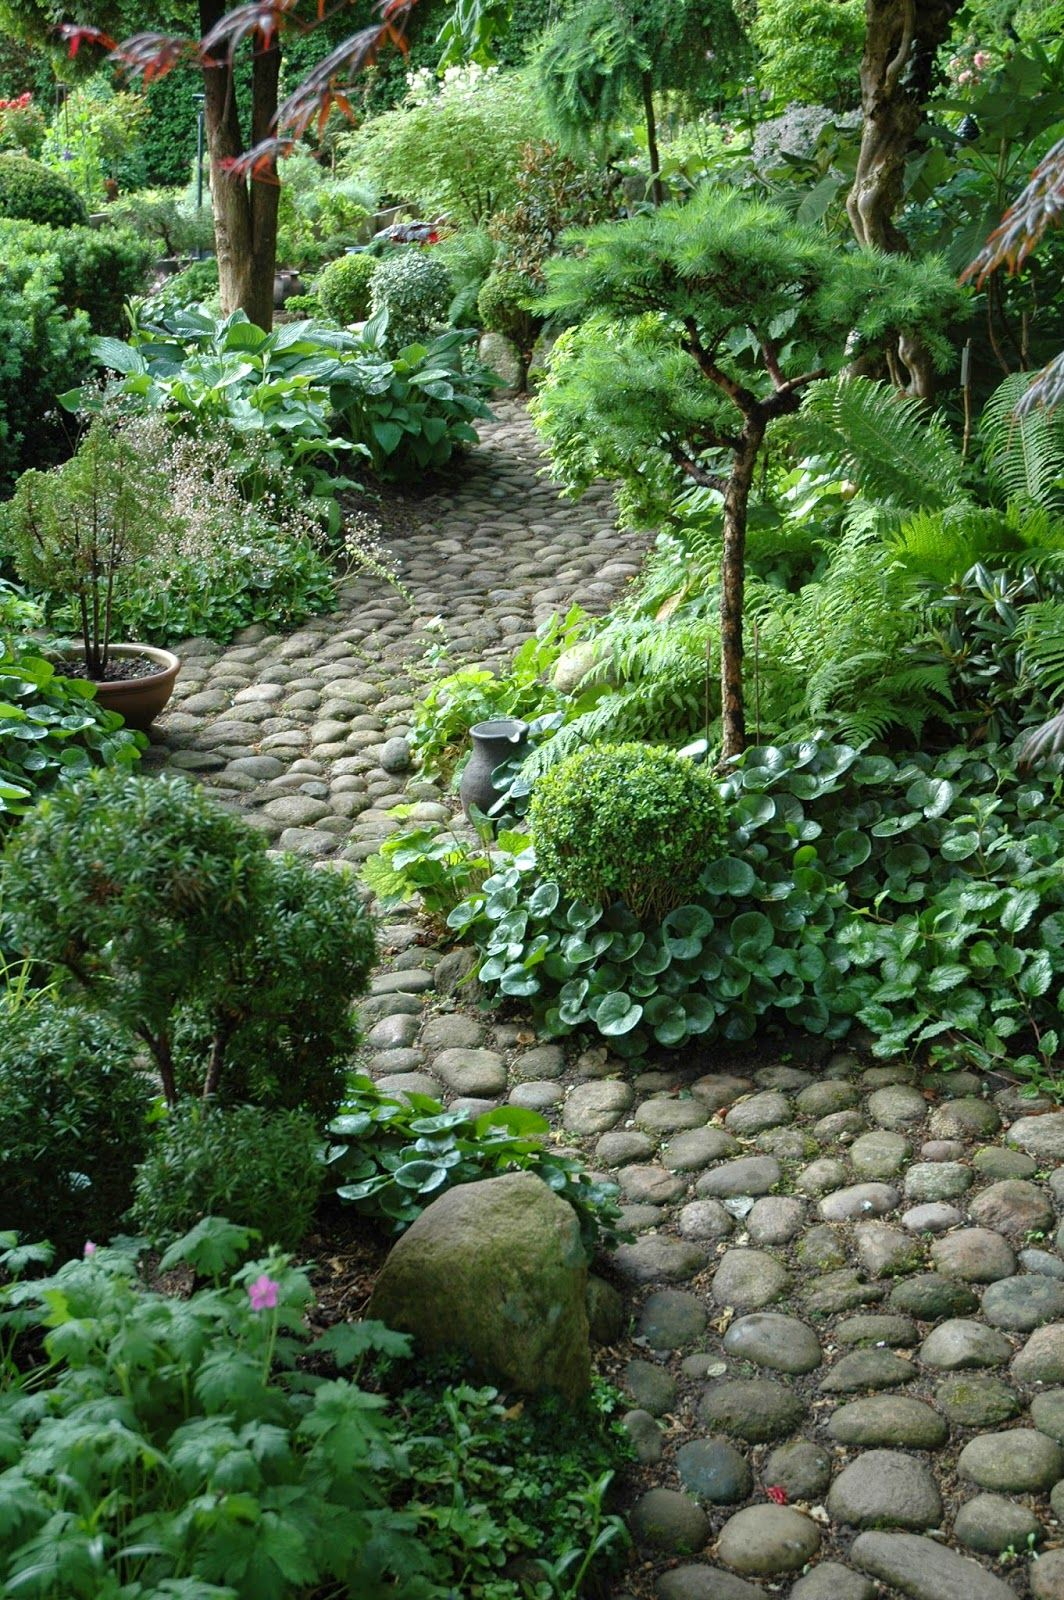 Shade gardens, rock gardens, interesting rock integration into gardens/containers